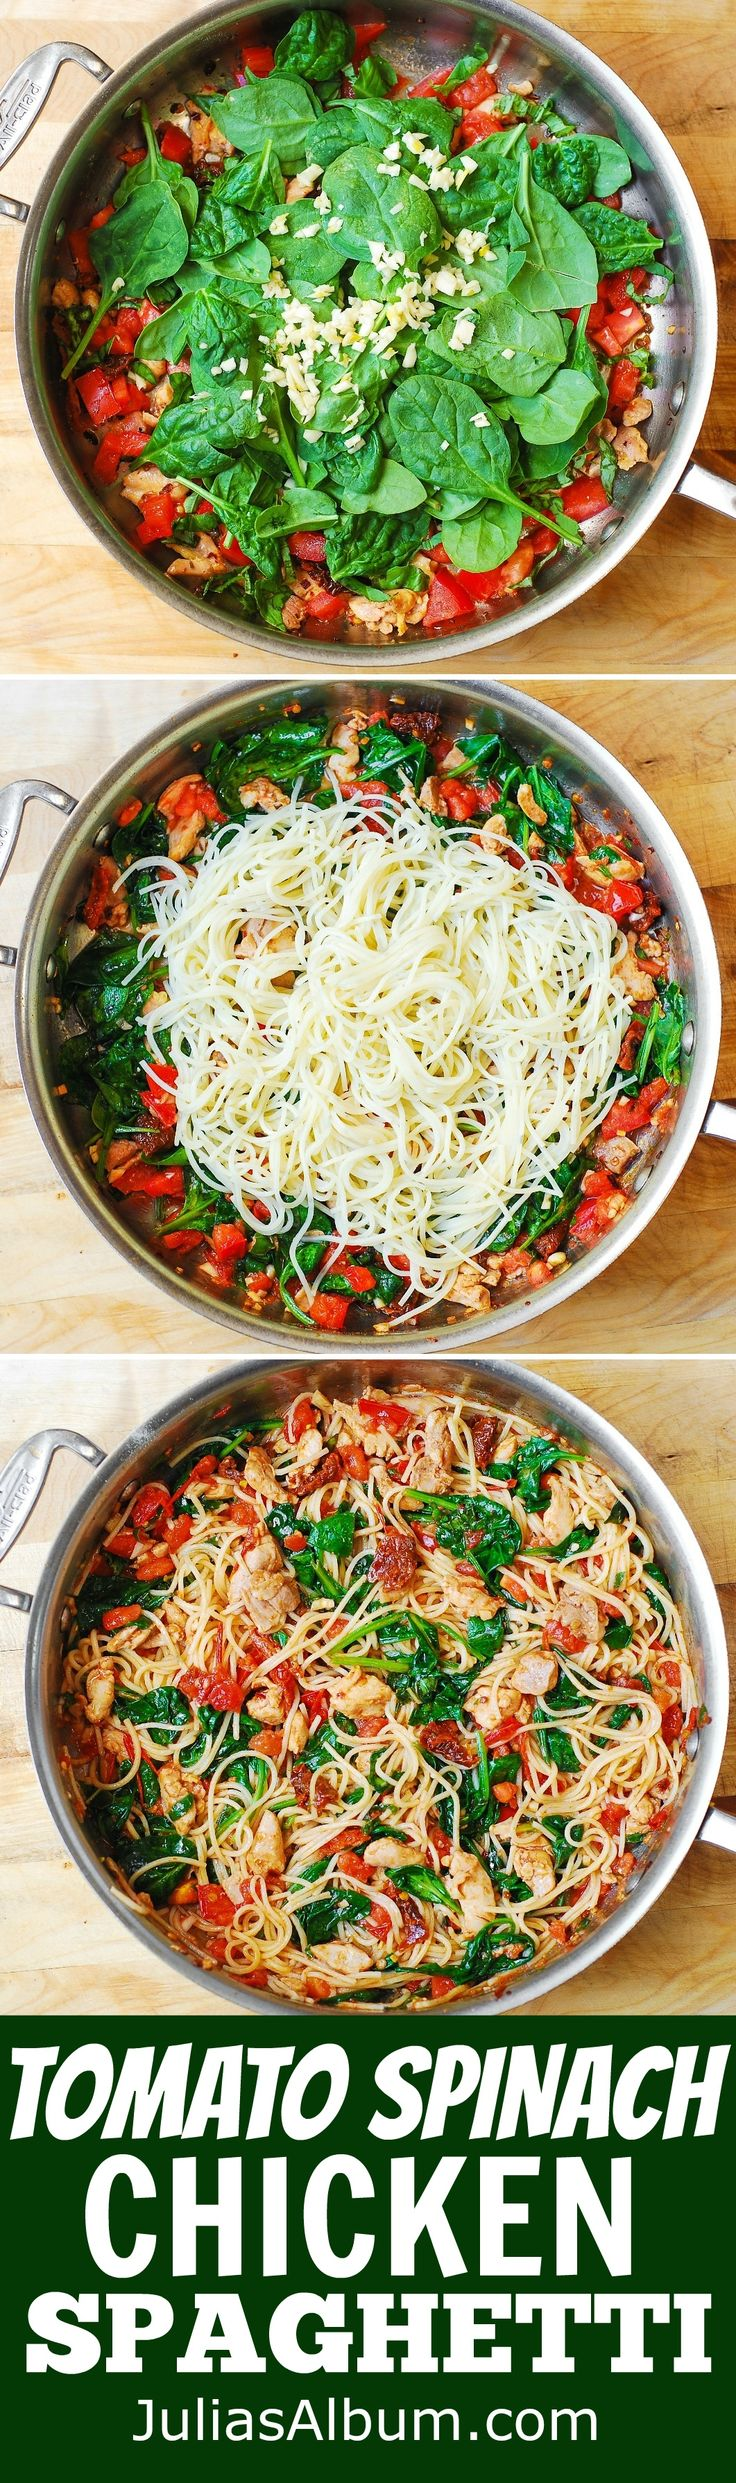 Tomato Basil & Spinach Chicken Spaghetti – healthy, light, Mediterranean style dinner, packed with vegetables, protein and good oils. Use zoodles !